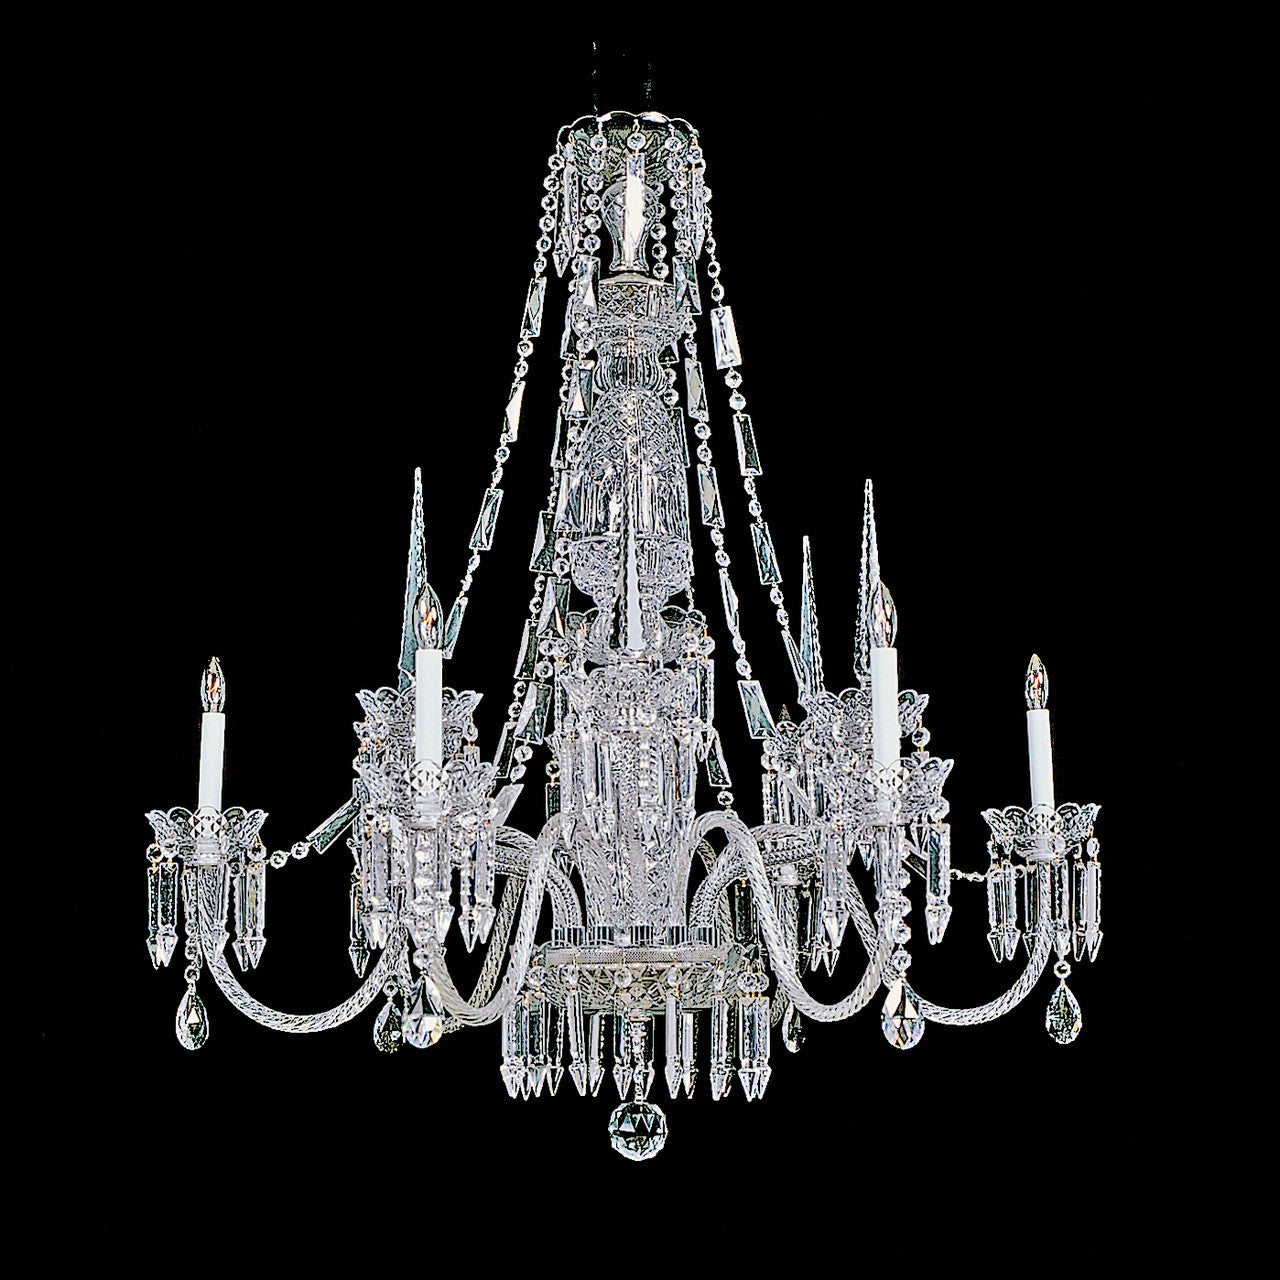 Beauregard 6 light crystal chandelier 38 x 42 king 39 s chandelier co - Lights and chandeliers ...